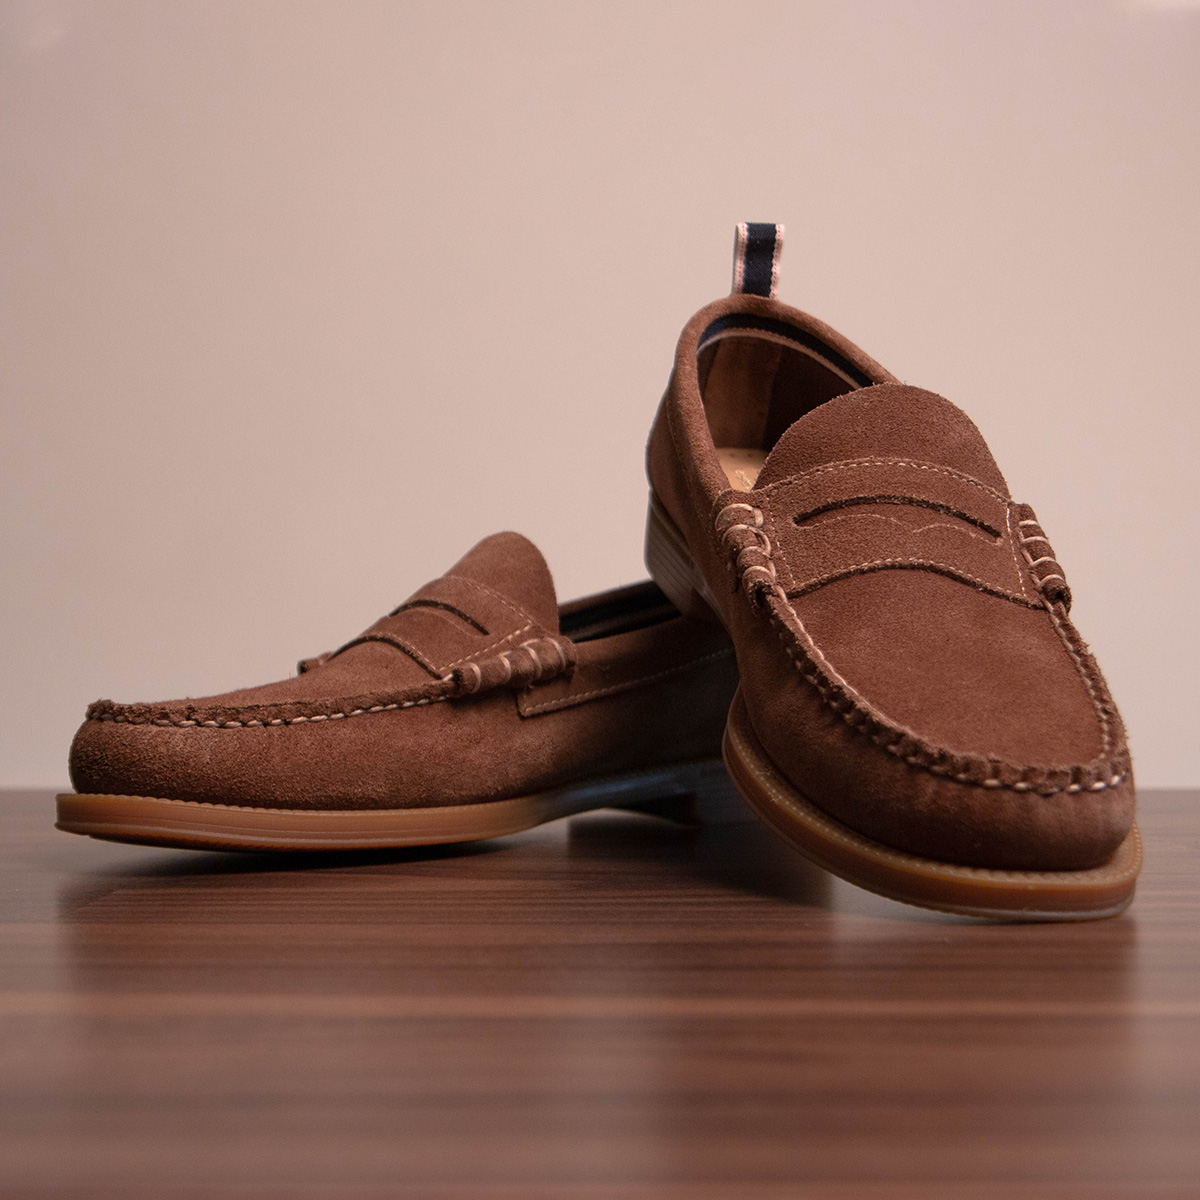 GH Bass Shoes in brown